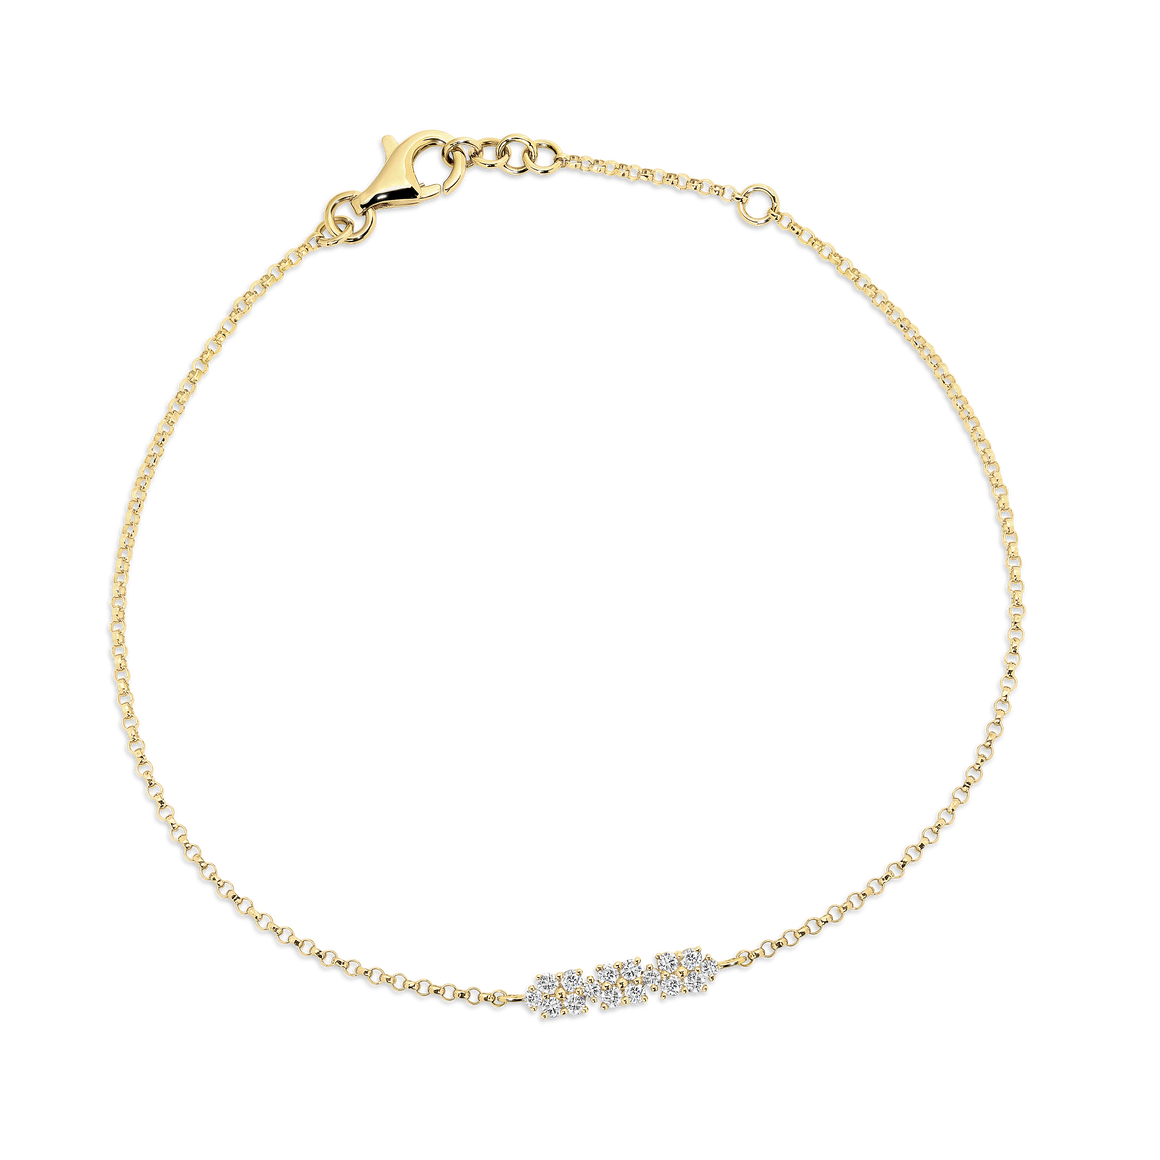 Yellow Gold & Diamond Flower Fine Bracelet - Gemma Stone  ABN:51 621 127 866